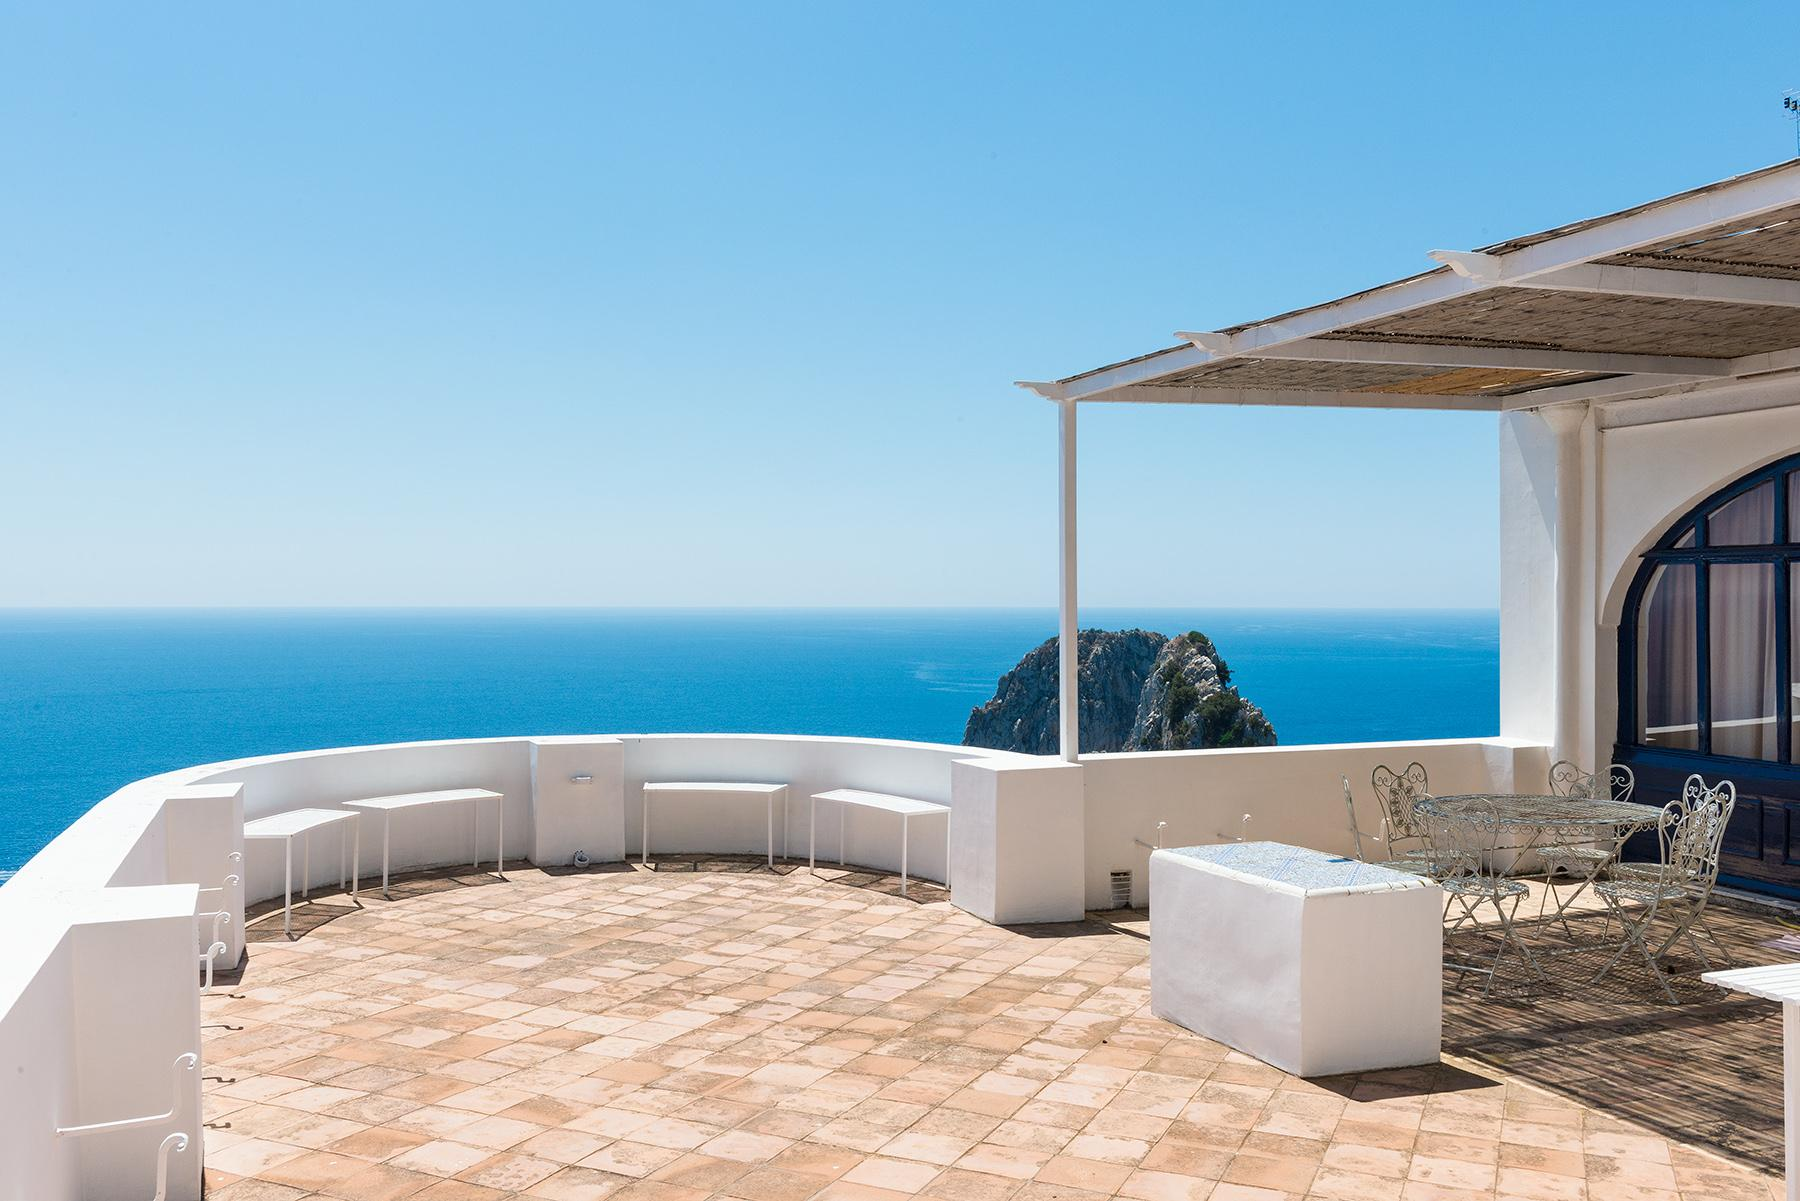 Remarkable villa with a breathtaking panorama on the Faraglioni rocks - 23